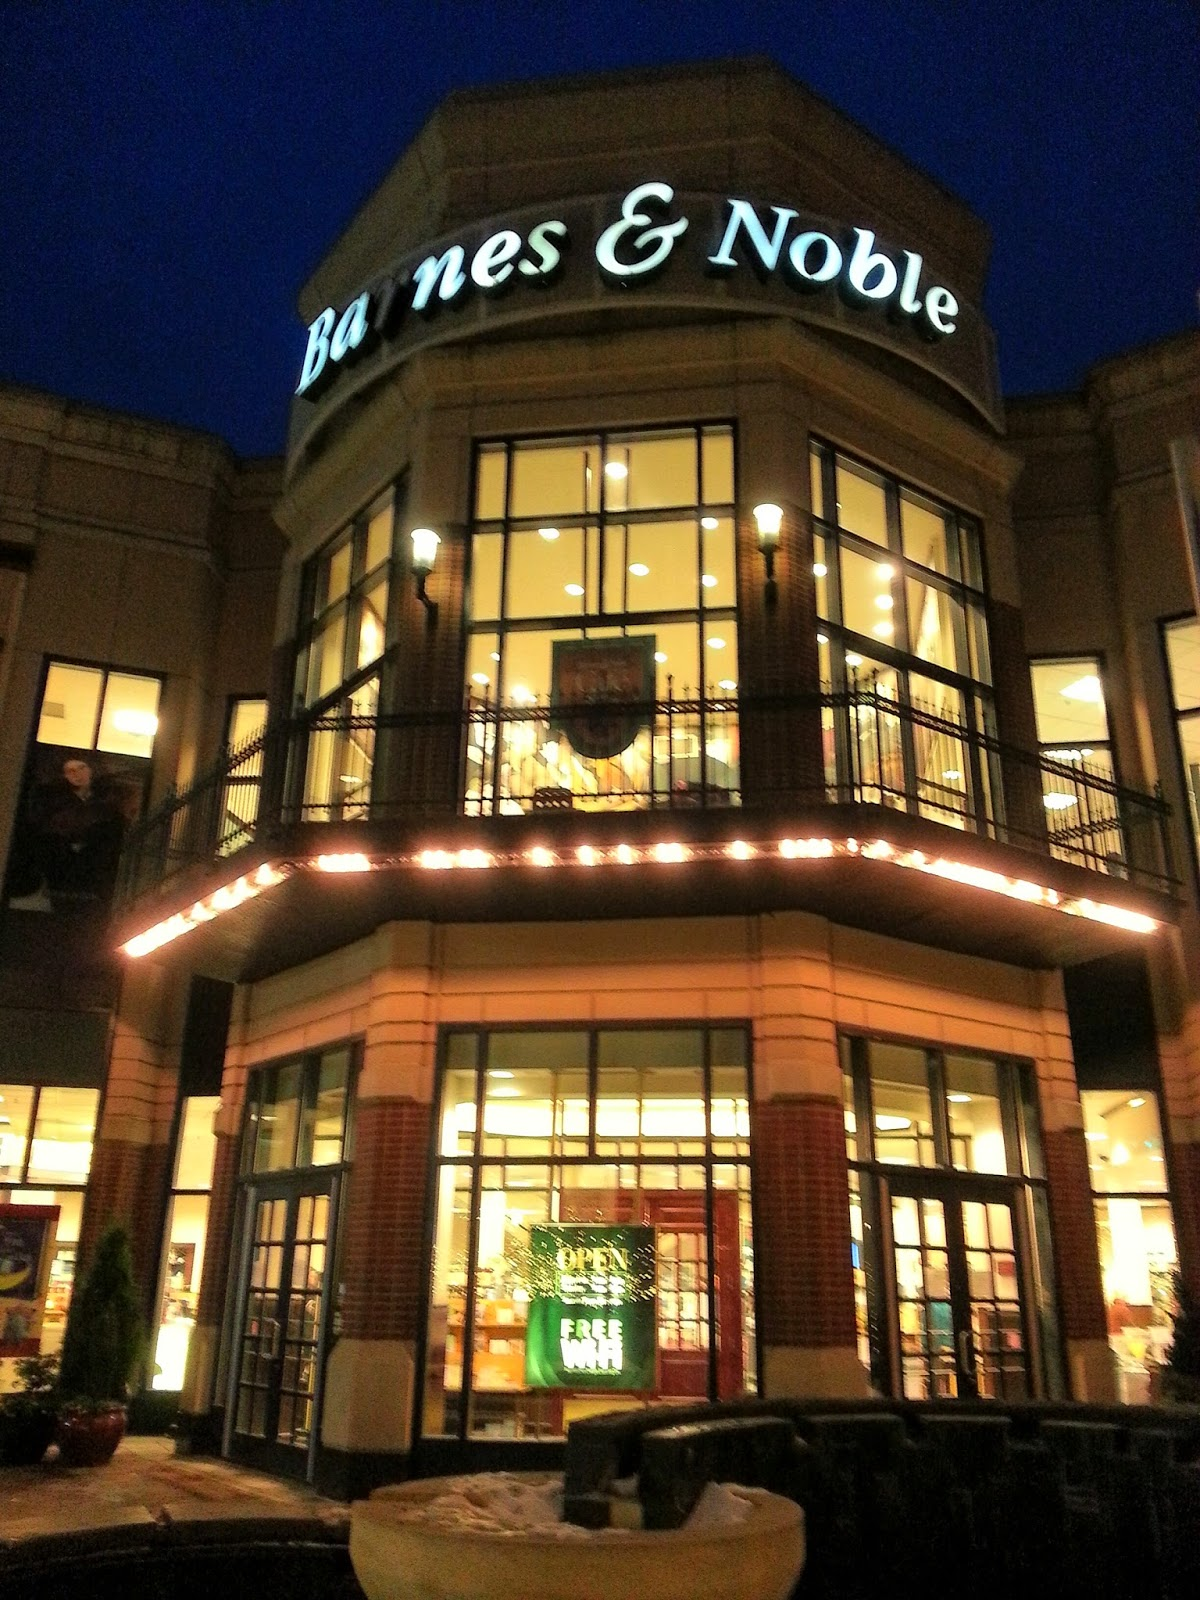 Robert Dyer @ Bethesda Row: NEW HOURS AT BARNES & NOBLE SUGGEST ...